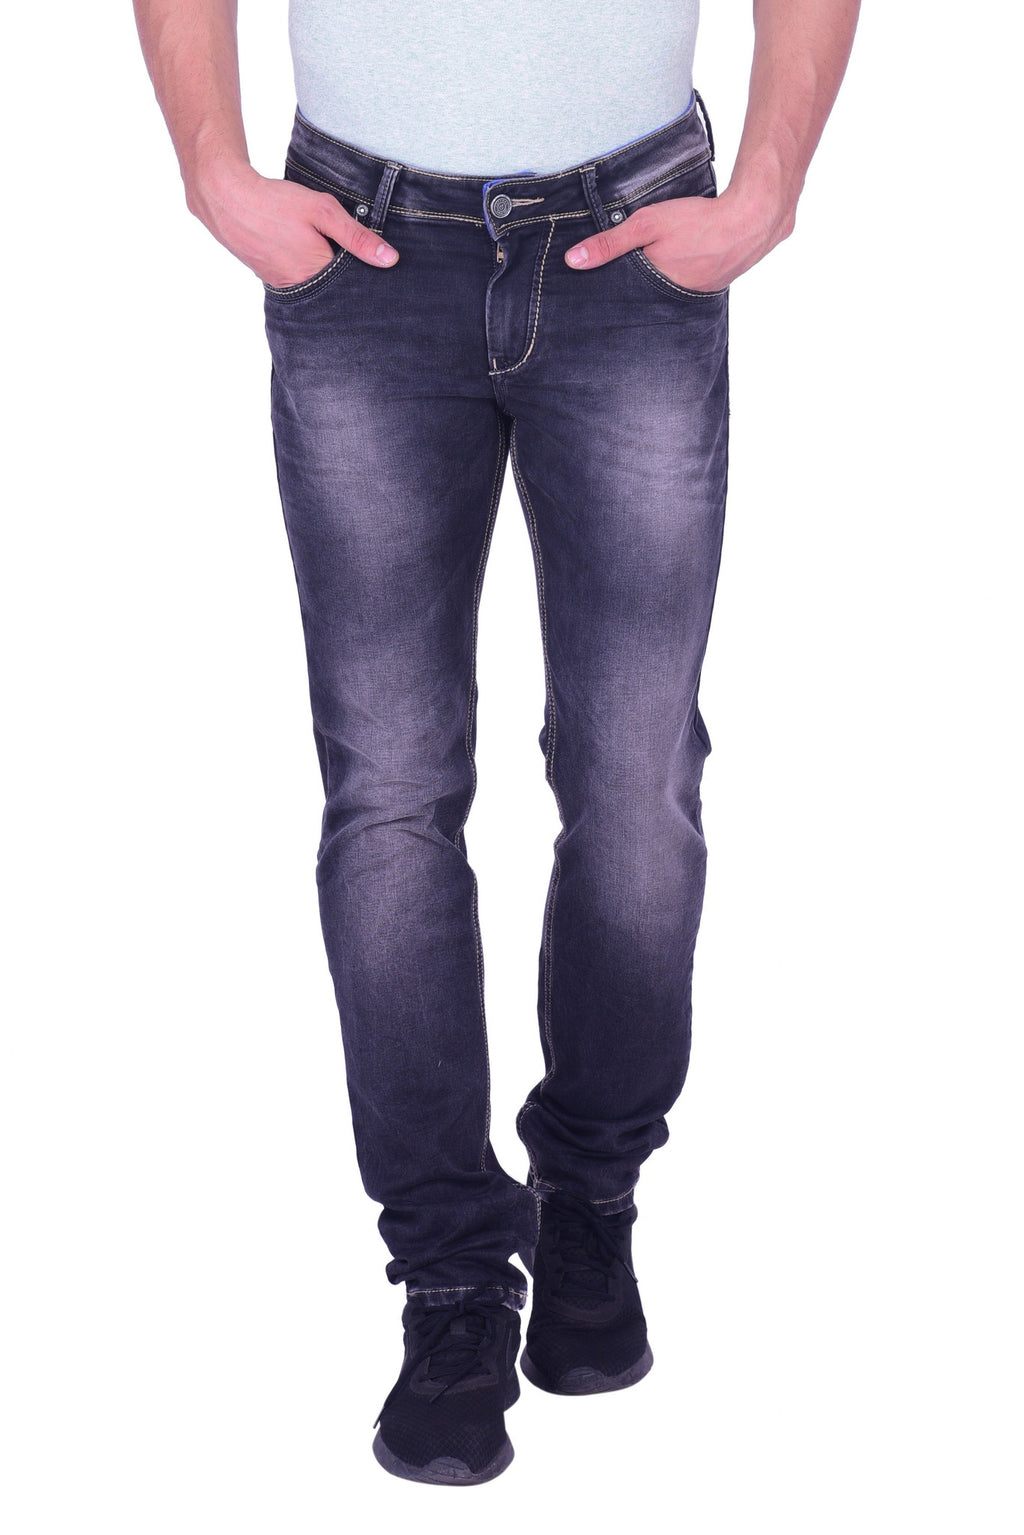 Drill Fit Trendy Denim JH573